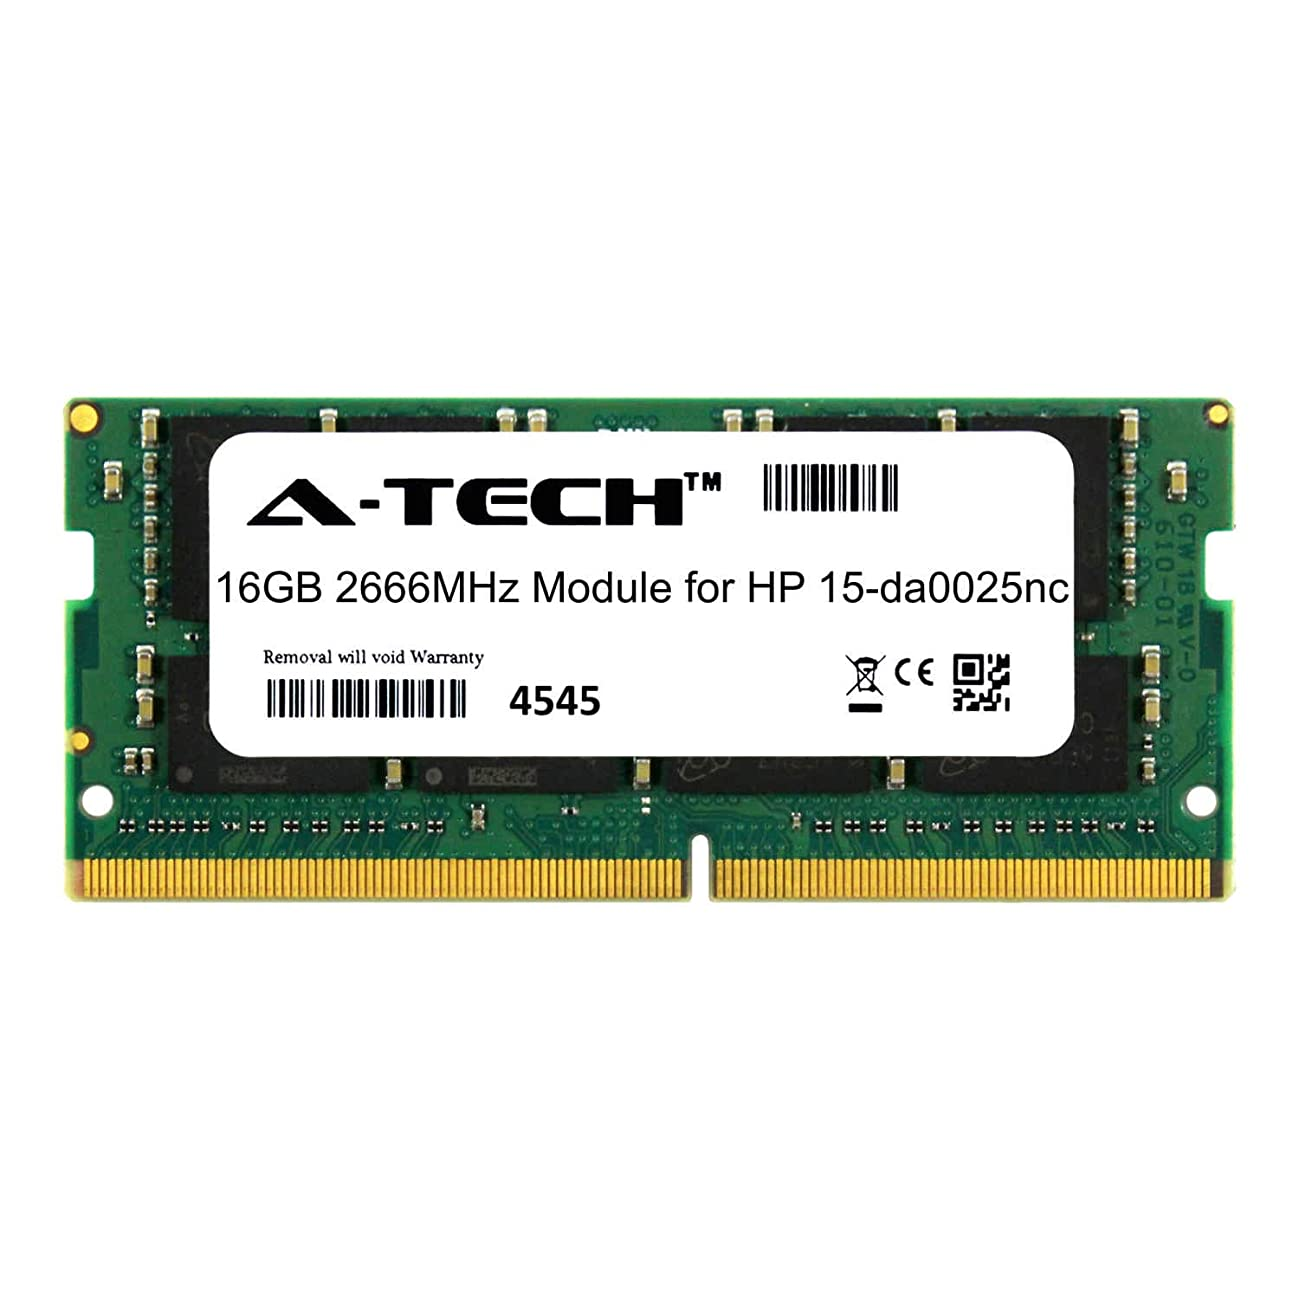 A-Tech 16GB Module for HP 15-da0025nc Laptop & Notebook Compatible DDR4 2666Mhz Memory Ram (ATMS381605A25832X1)